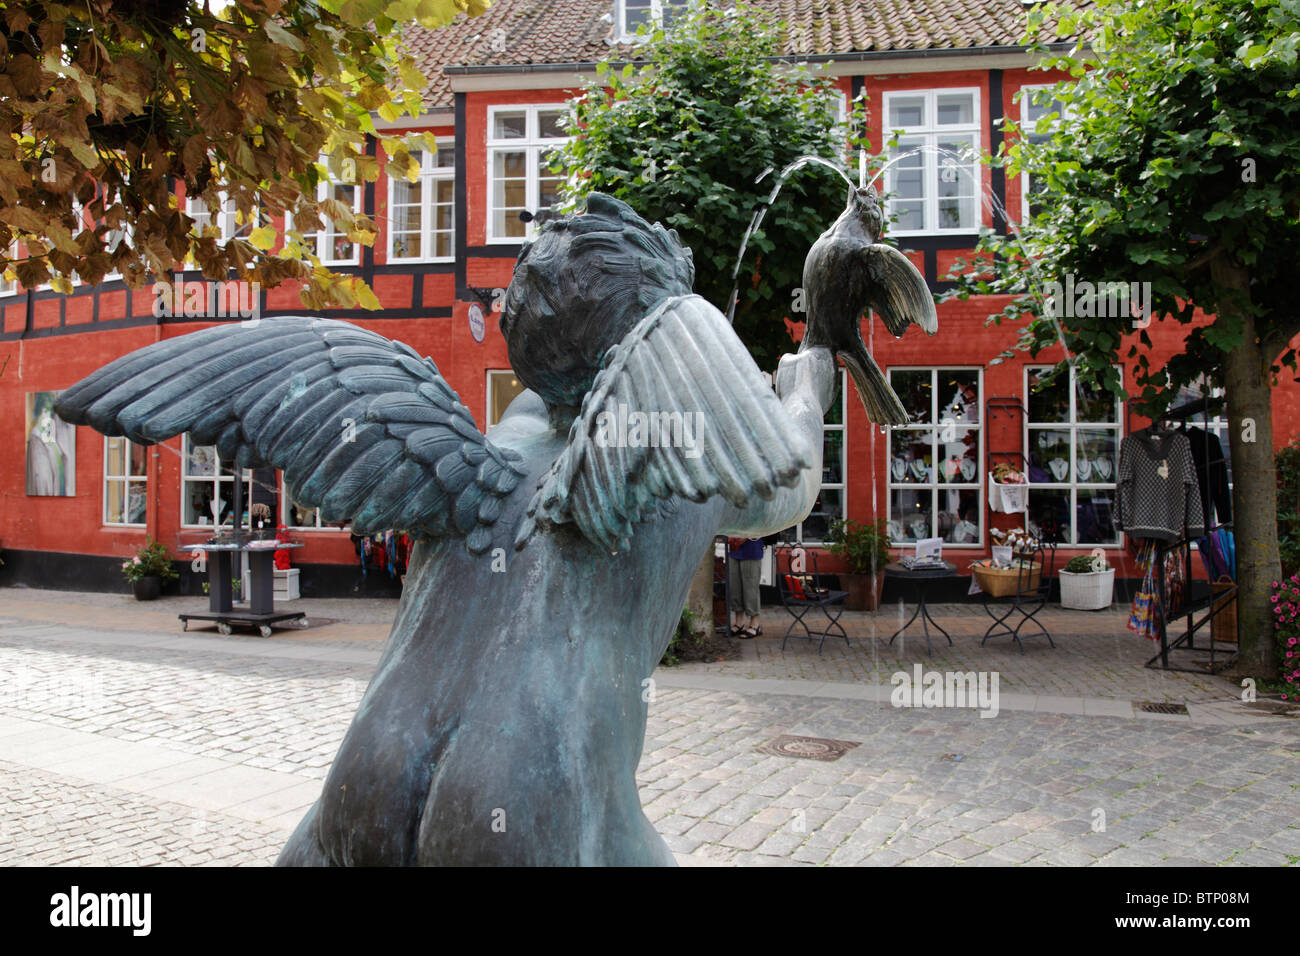 angel sculpture as a water fountain in Rudkøbing, Denmark - Stock Image